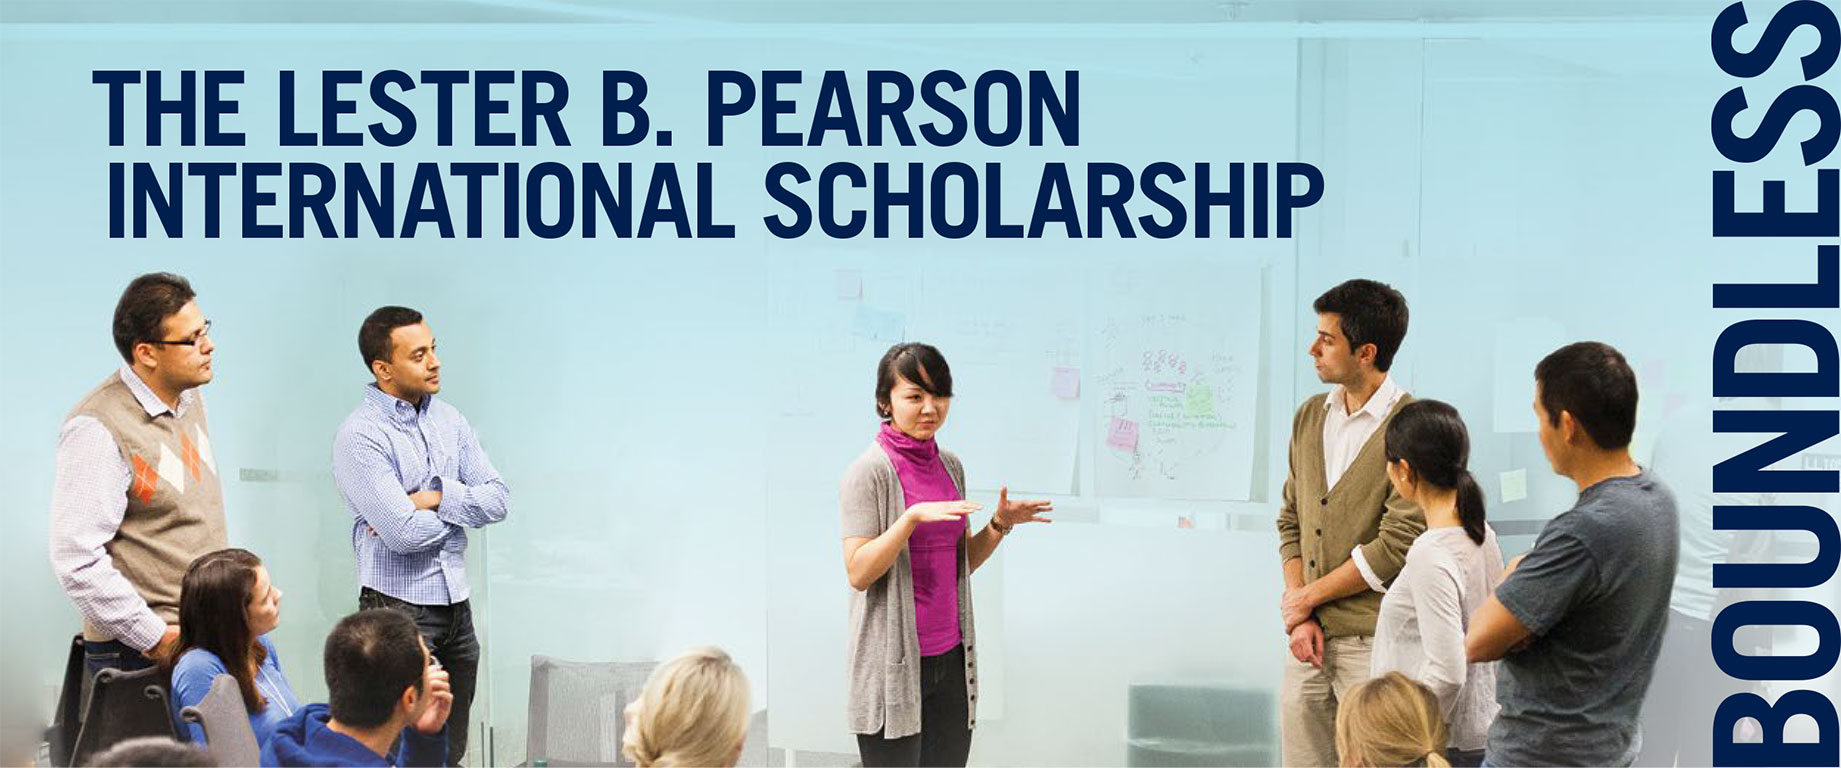 Lester B. Pearson International Scholarship Program 2018/2019